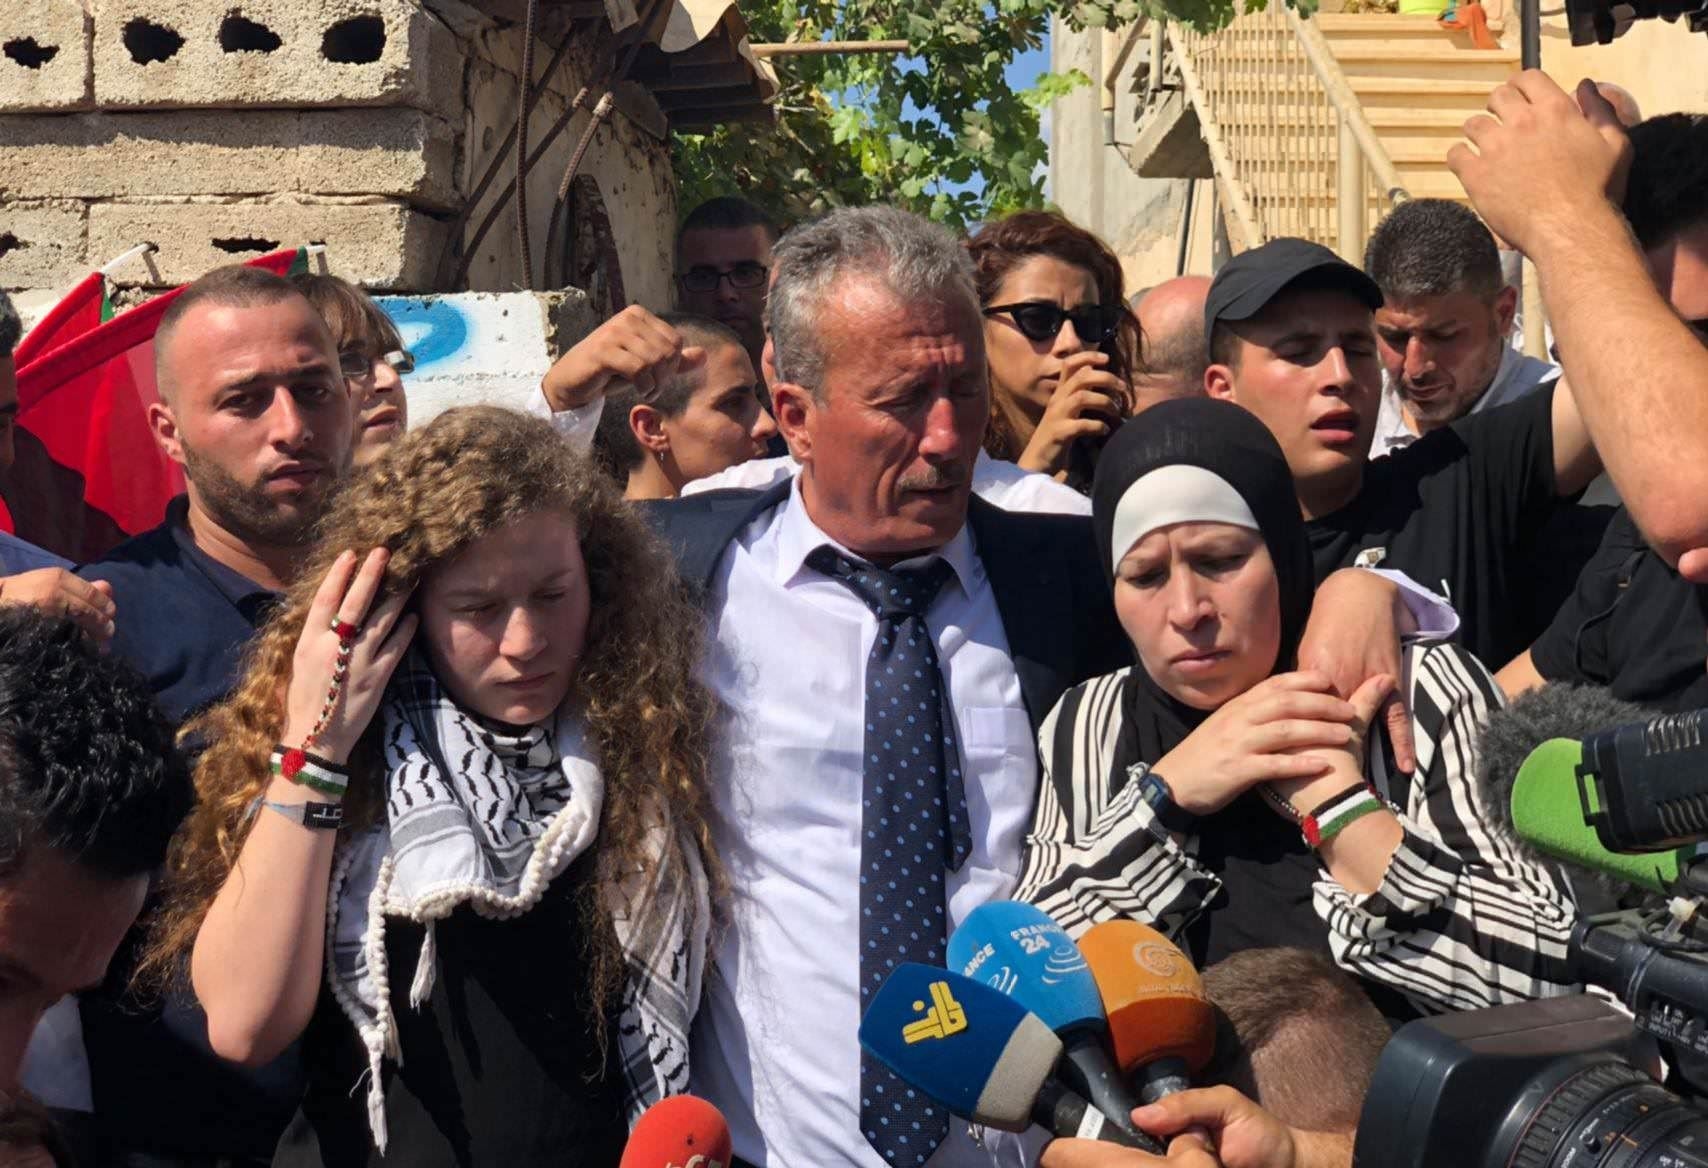 Ahed Tamimi: BRAVE Beautiful & BOLD